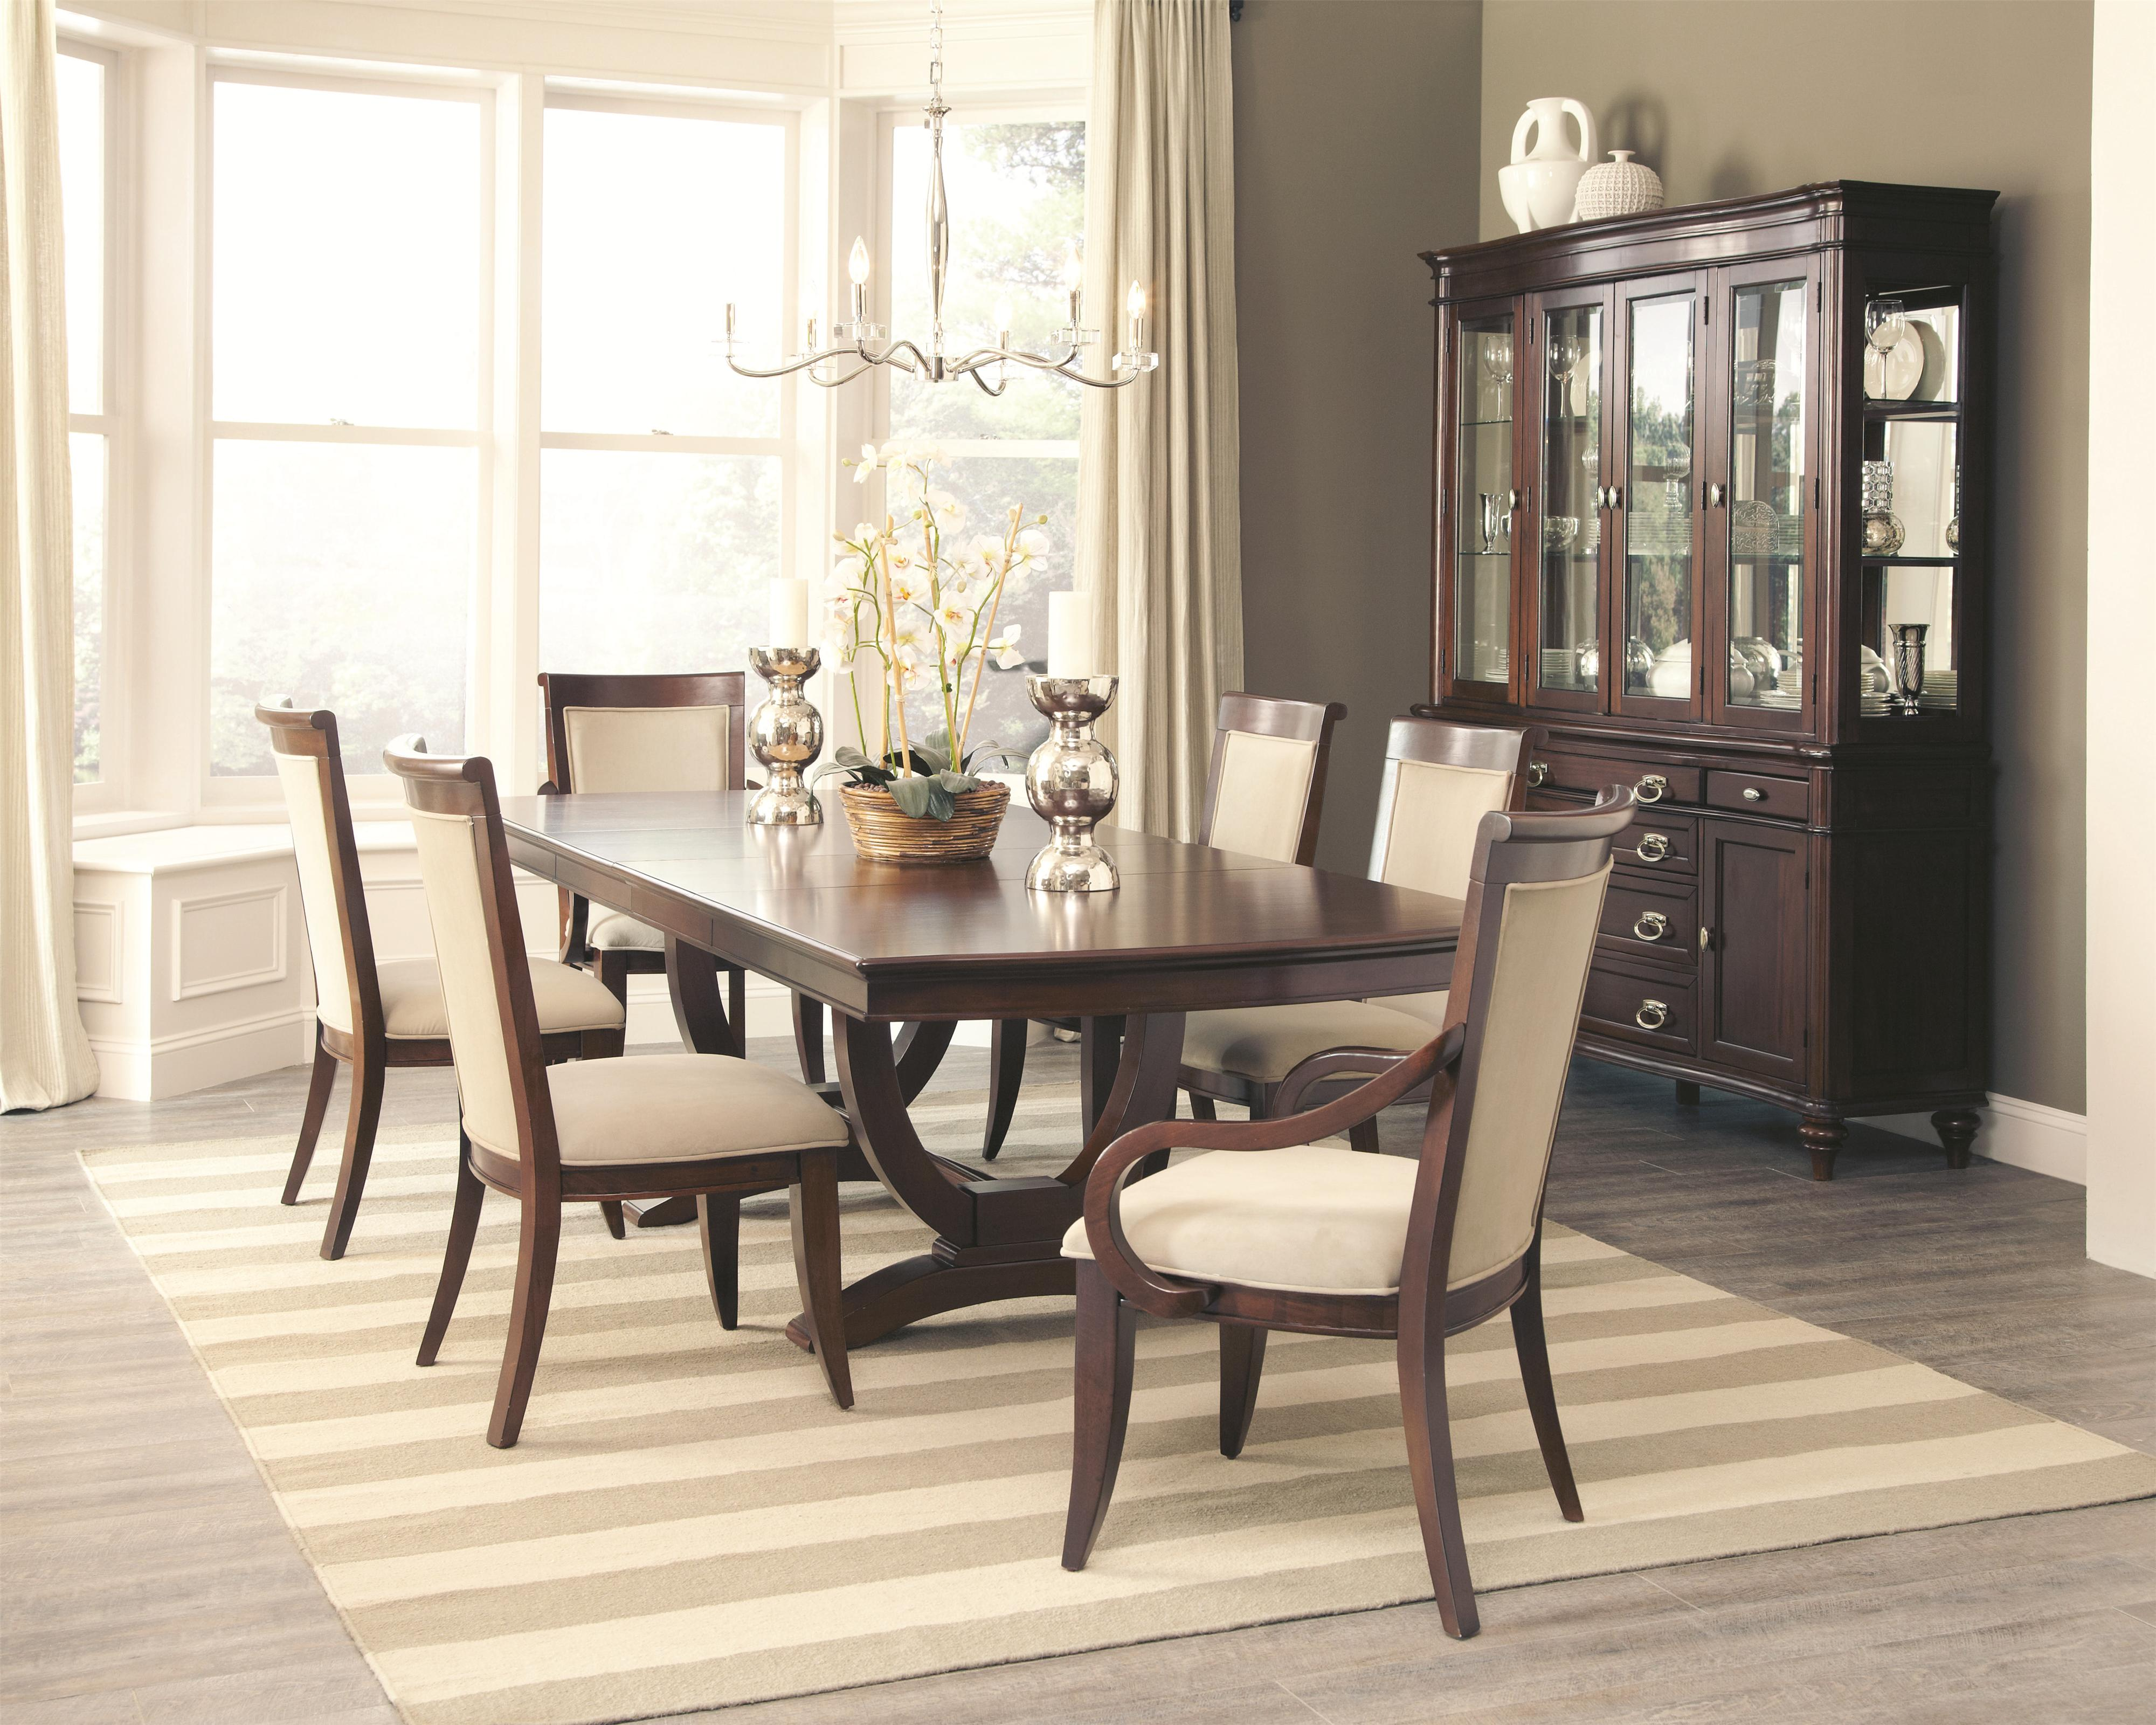 kitchen table chairs Coaster Alyssa Dining Table and 4 Side Chair and 2 Arm Chair Set Value City Furniture Dining 7 or more Piece Sets